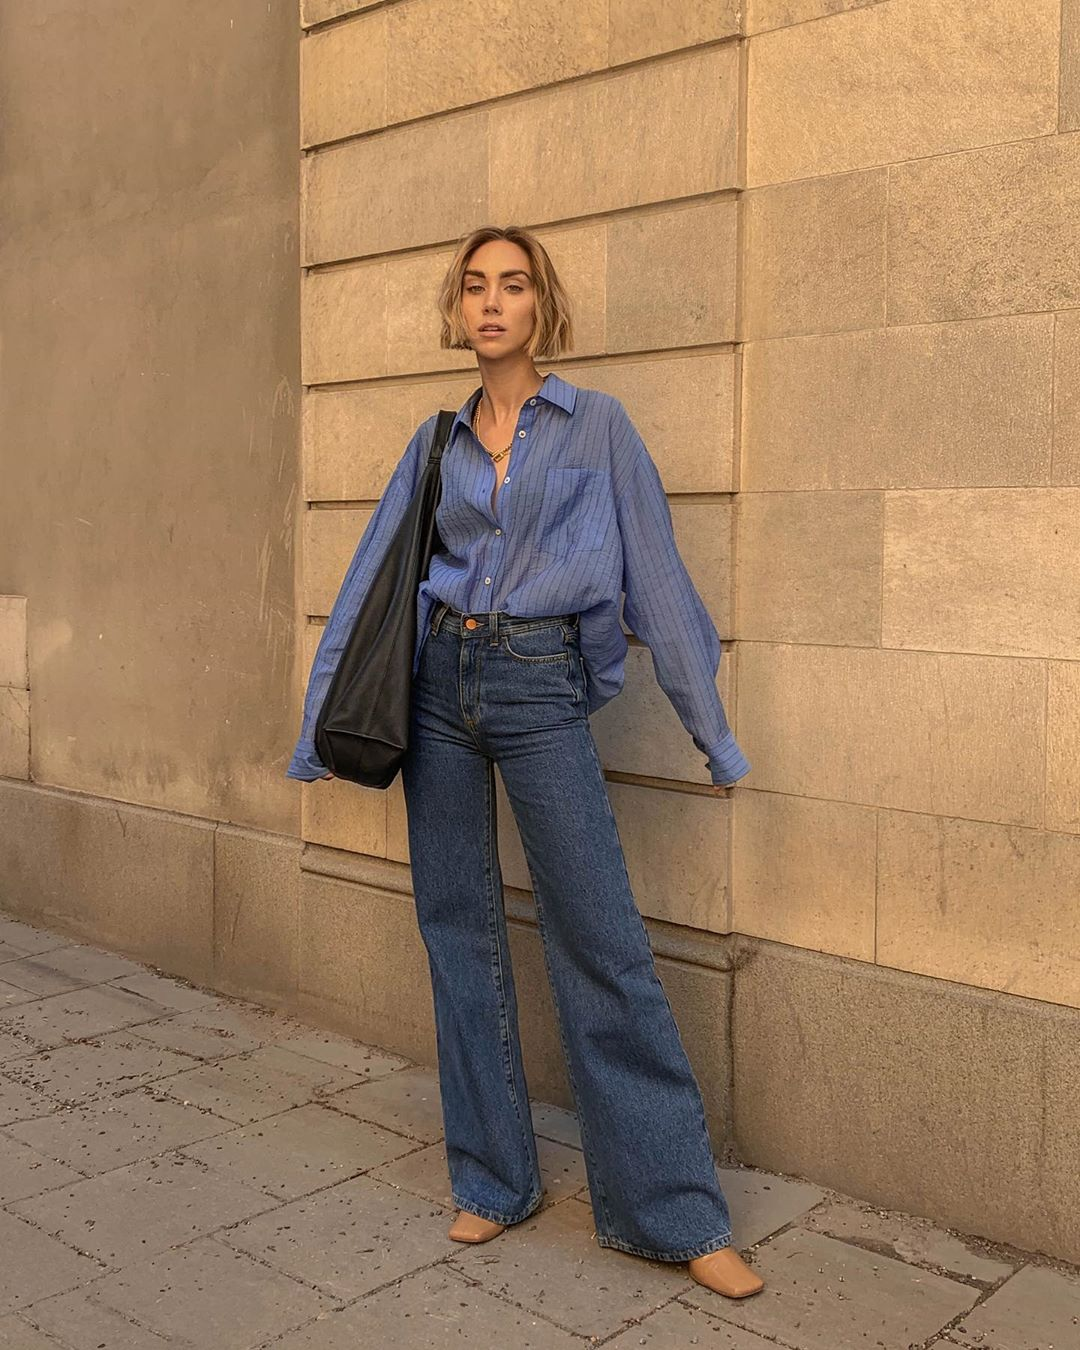 How to Wear Flared Jeans Like a Cool Scandi-Girl  — Lisa Olsson Instagram outfit with a blue button-down shirt, black tote bag, and square-toed shoes